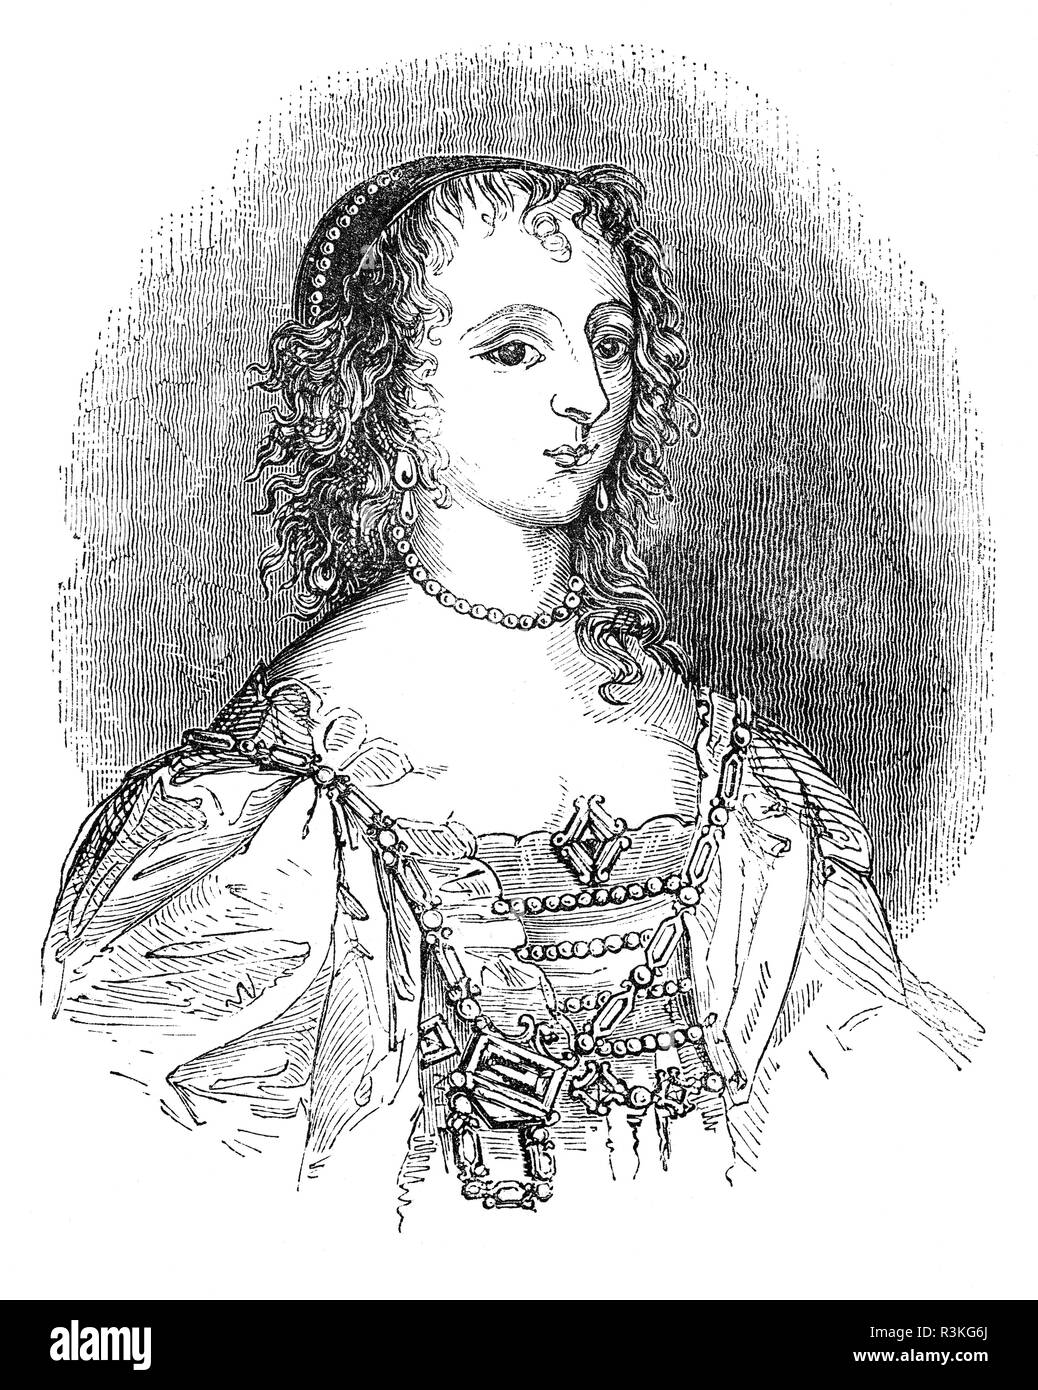 Henrietta Maria of France (1609-1669) was queen consort of England, Scotland, and Ireland as the wife of King Charles I. She was mother of his two immediate successors, Charles II and James II/VII. Contemporaneously, by a decree of her husband, she was known in England as Queen Mary, but did not like this name and signed her letters 'Henriette R'.  Her Roman Catholicism made her unpopular in England and prohibited her from being crowned in a Church of England service; therefore she never had a coronation. When civil war loomed on the horizon, and was compelled to seek refuge in France in 1644. - Stock Image